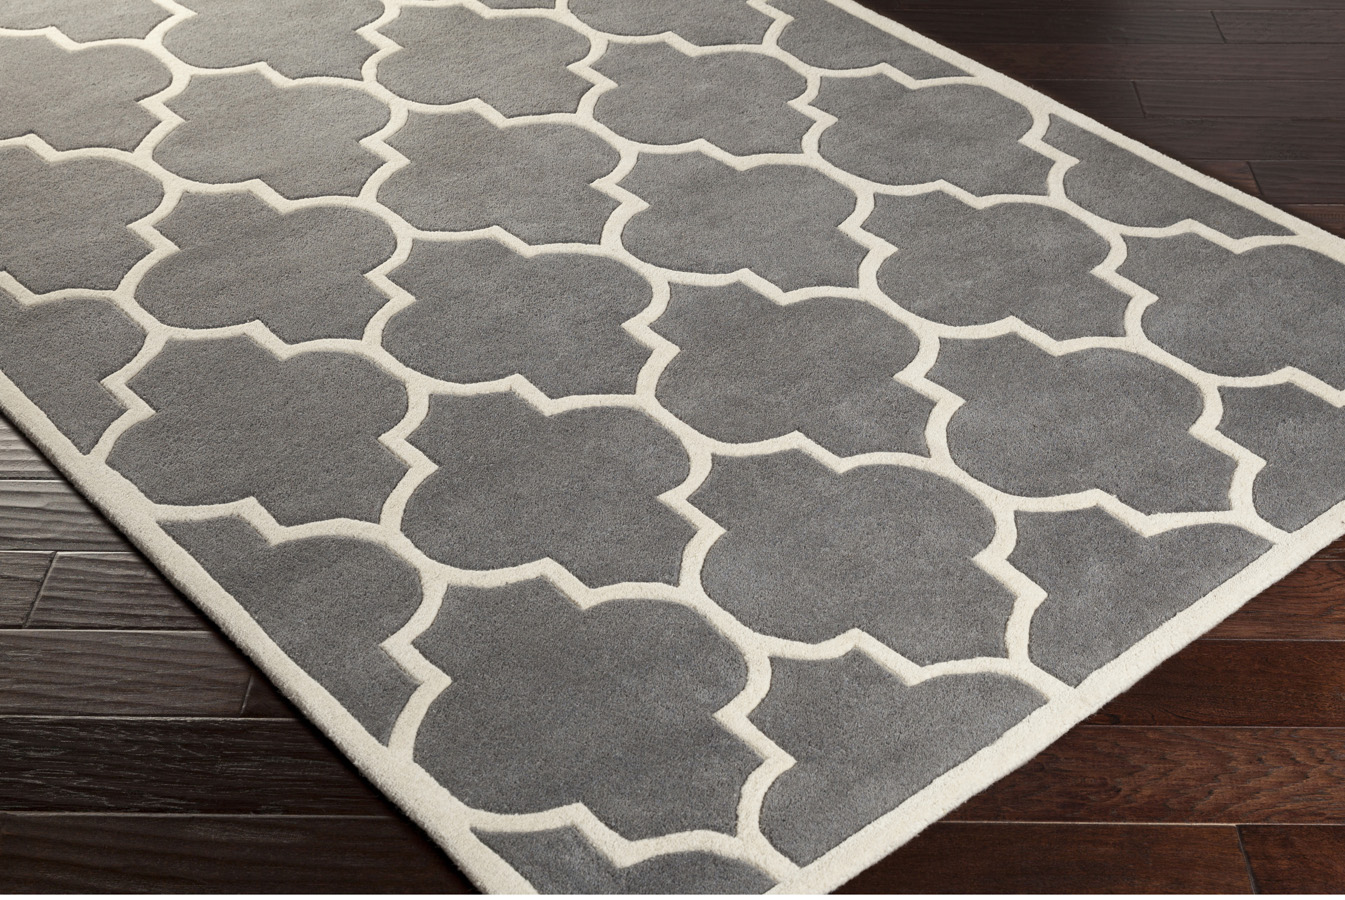 Artistic Weavers Transit Piper AWHE2017 Grey/White Area Rug:Payless Rugs - Transit Collection By ...